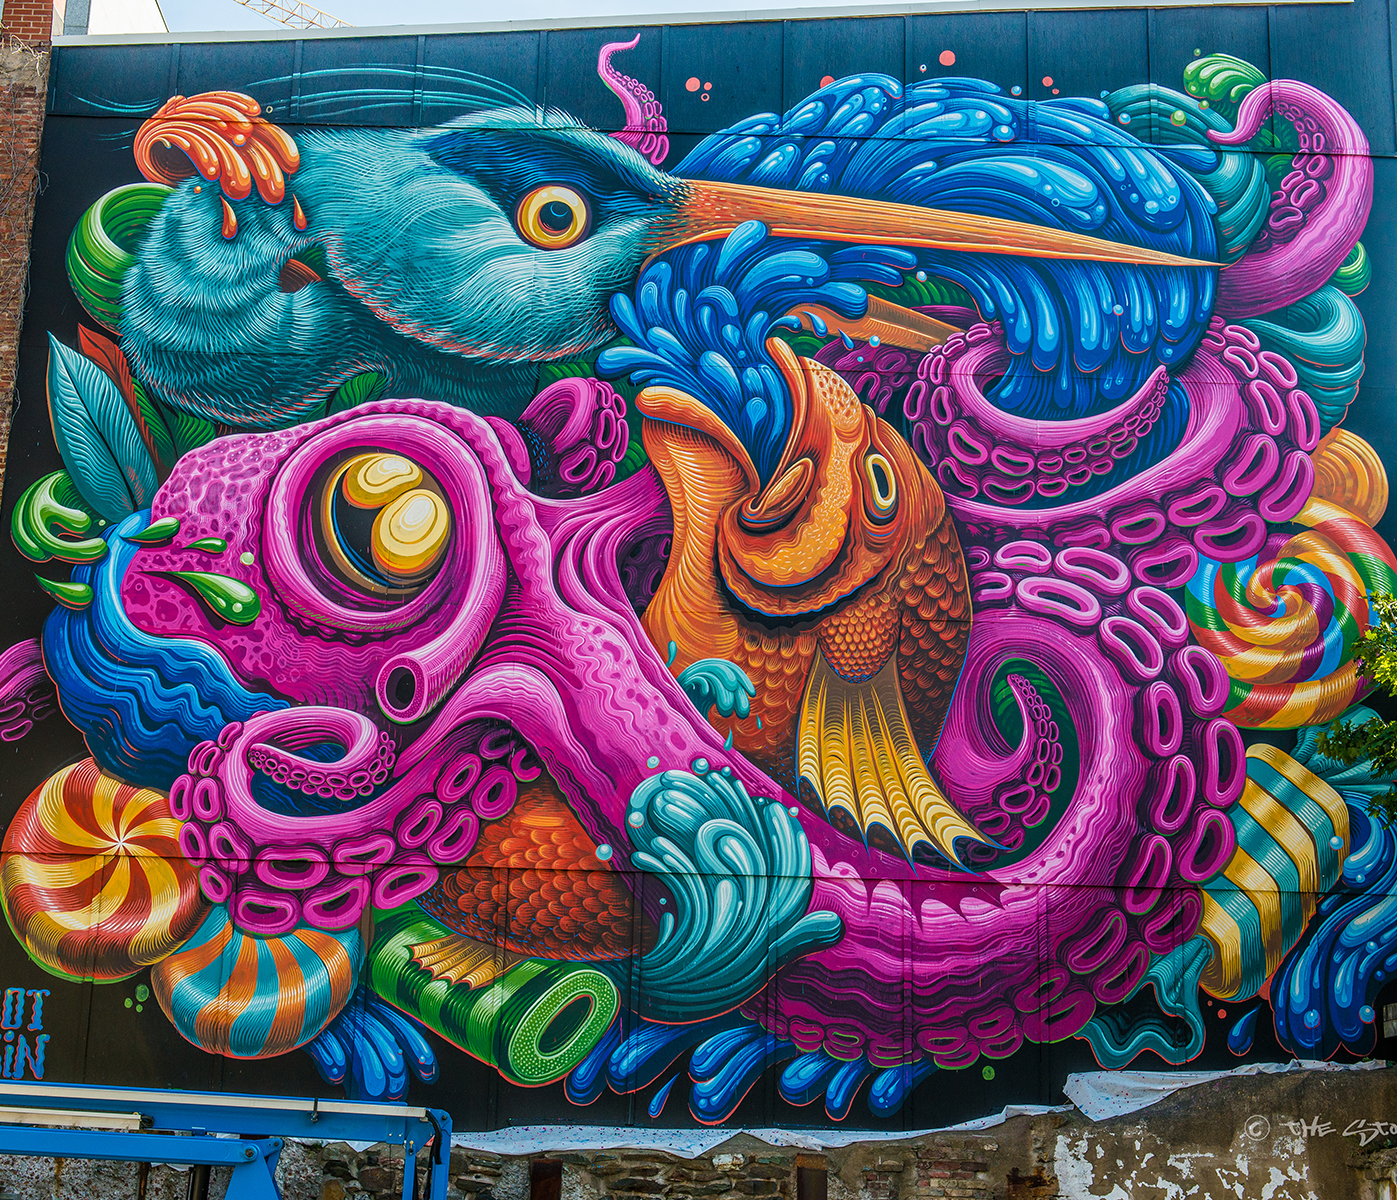 Detail of a 2015 Halifax mural by Montreal-based artist Jason Botkin. ( Image via www.jasonbotkin.com )